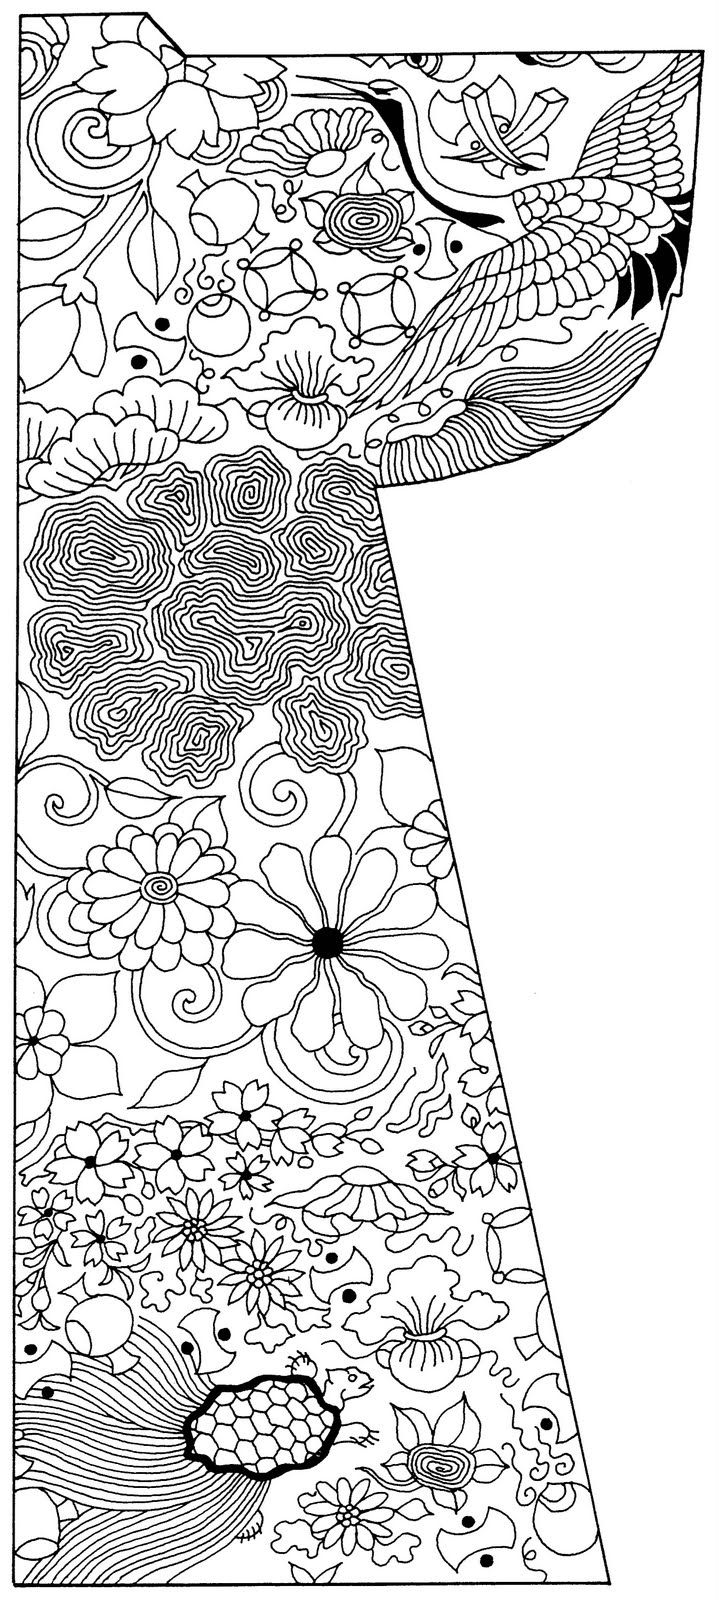 1000 images about line drawings asian on pinterest Coloring book japan